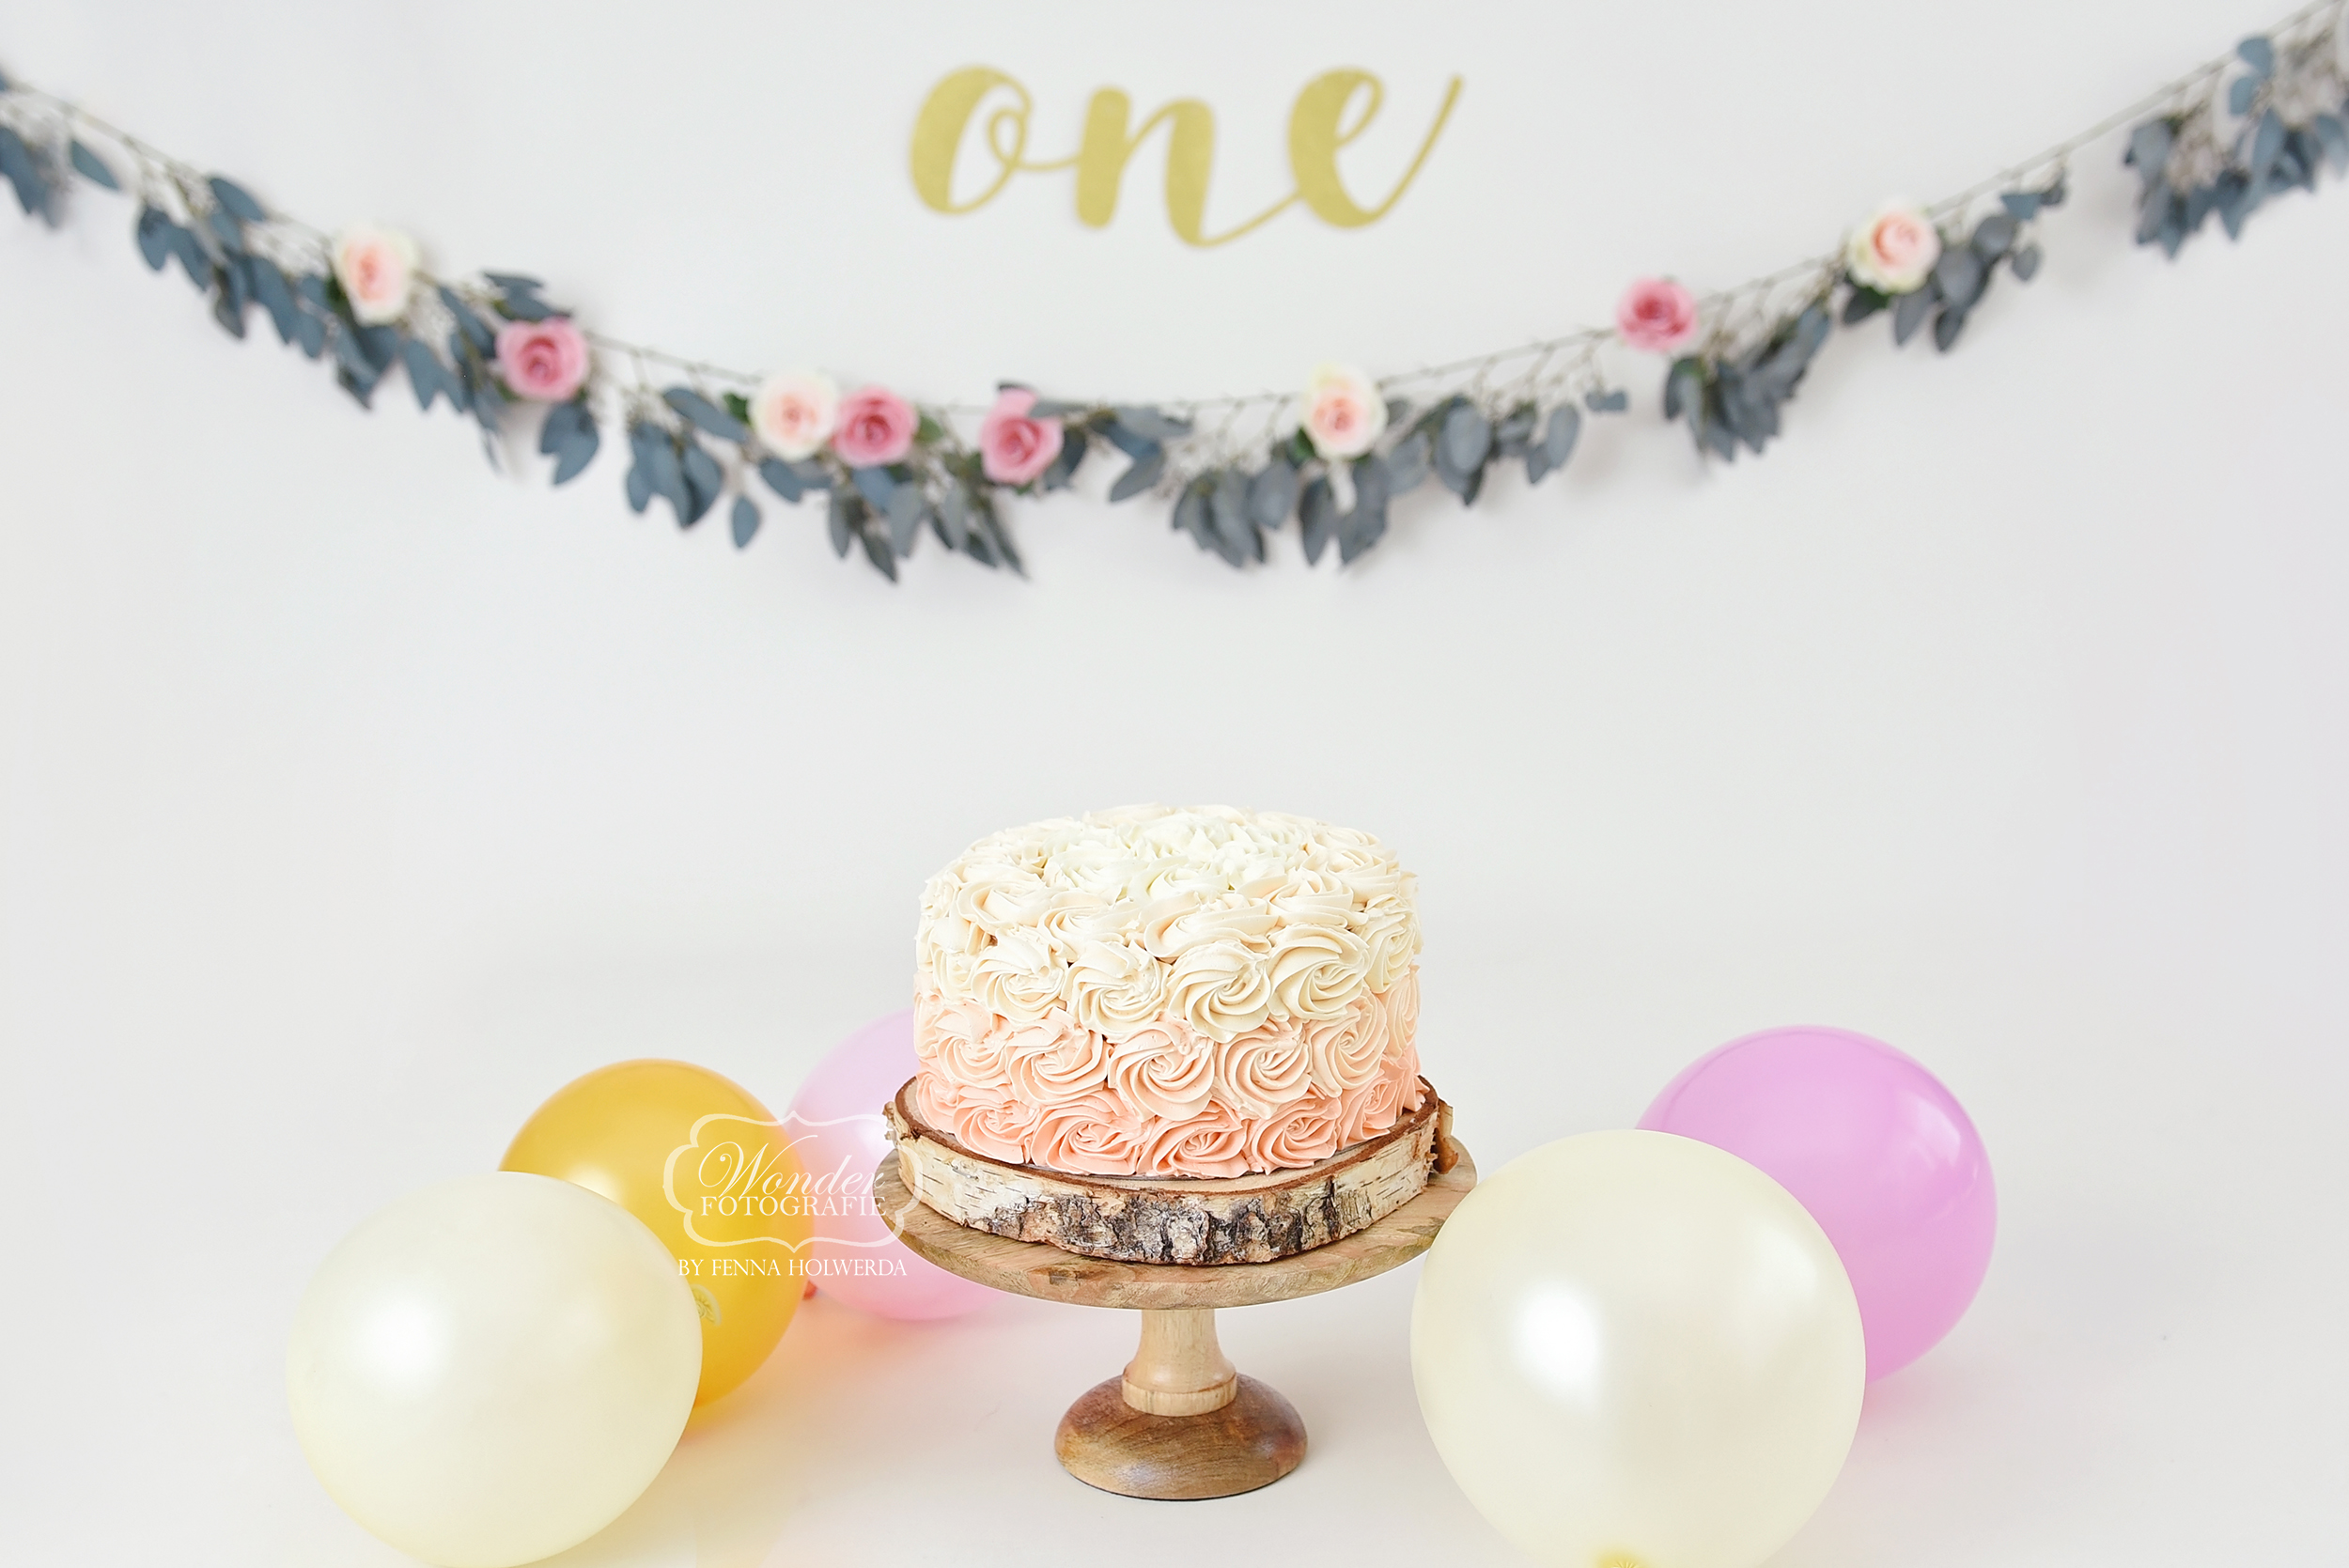 Boho cake smash taart bloemen cake smash fotoshoot photo shoot puur naturel